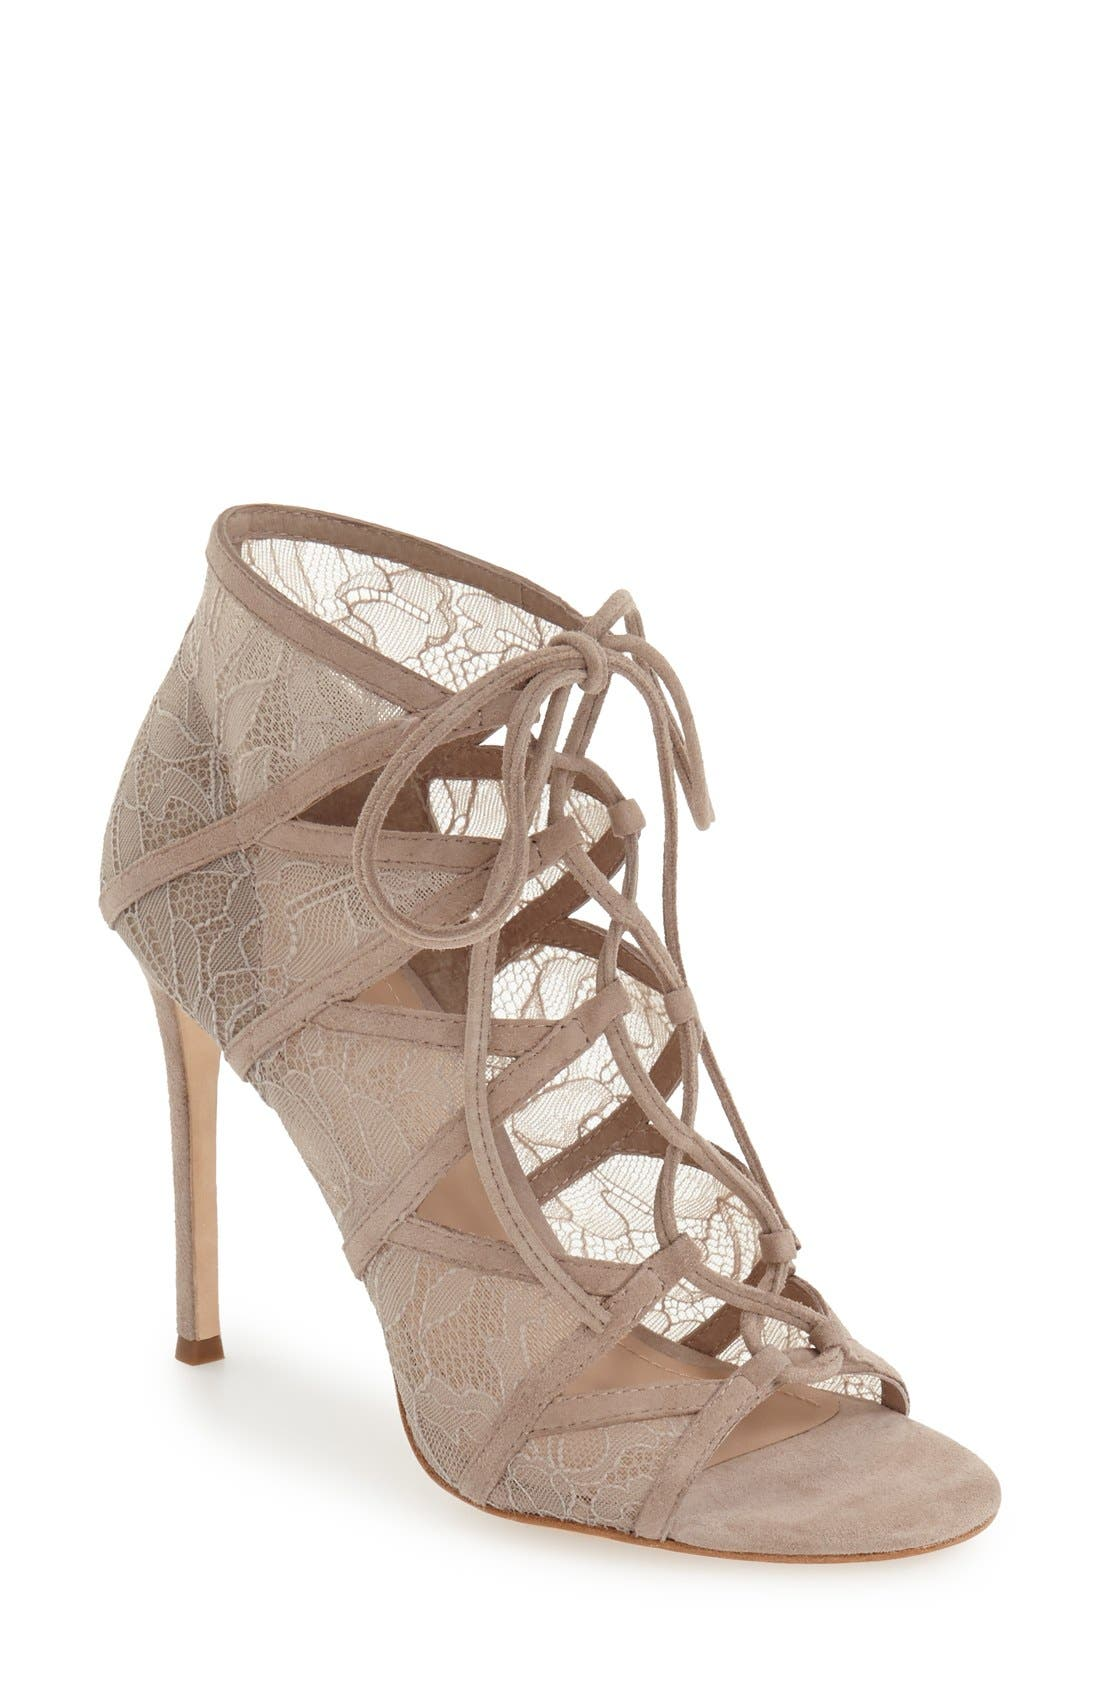 Main Image - Pour la Victoire 'Ellery' Lace-Up Sandal (Women)